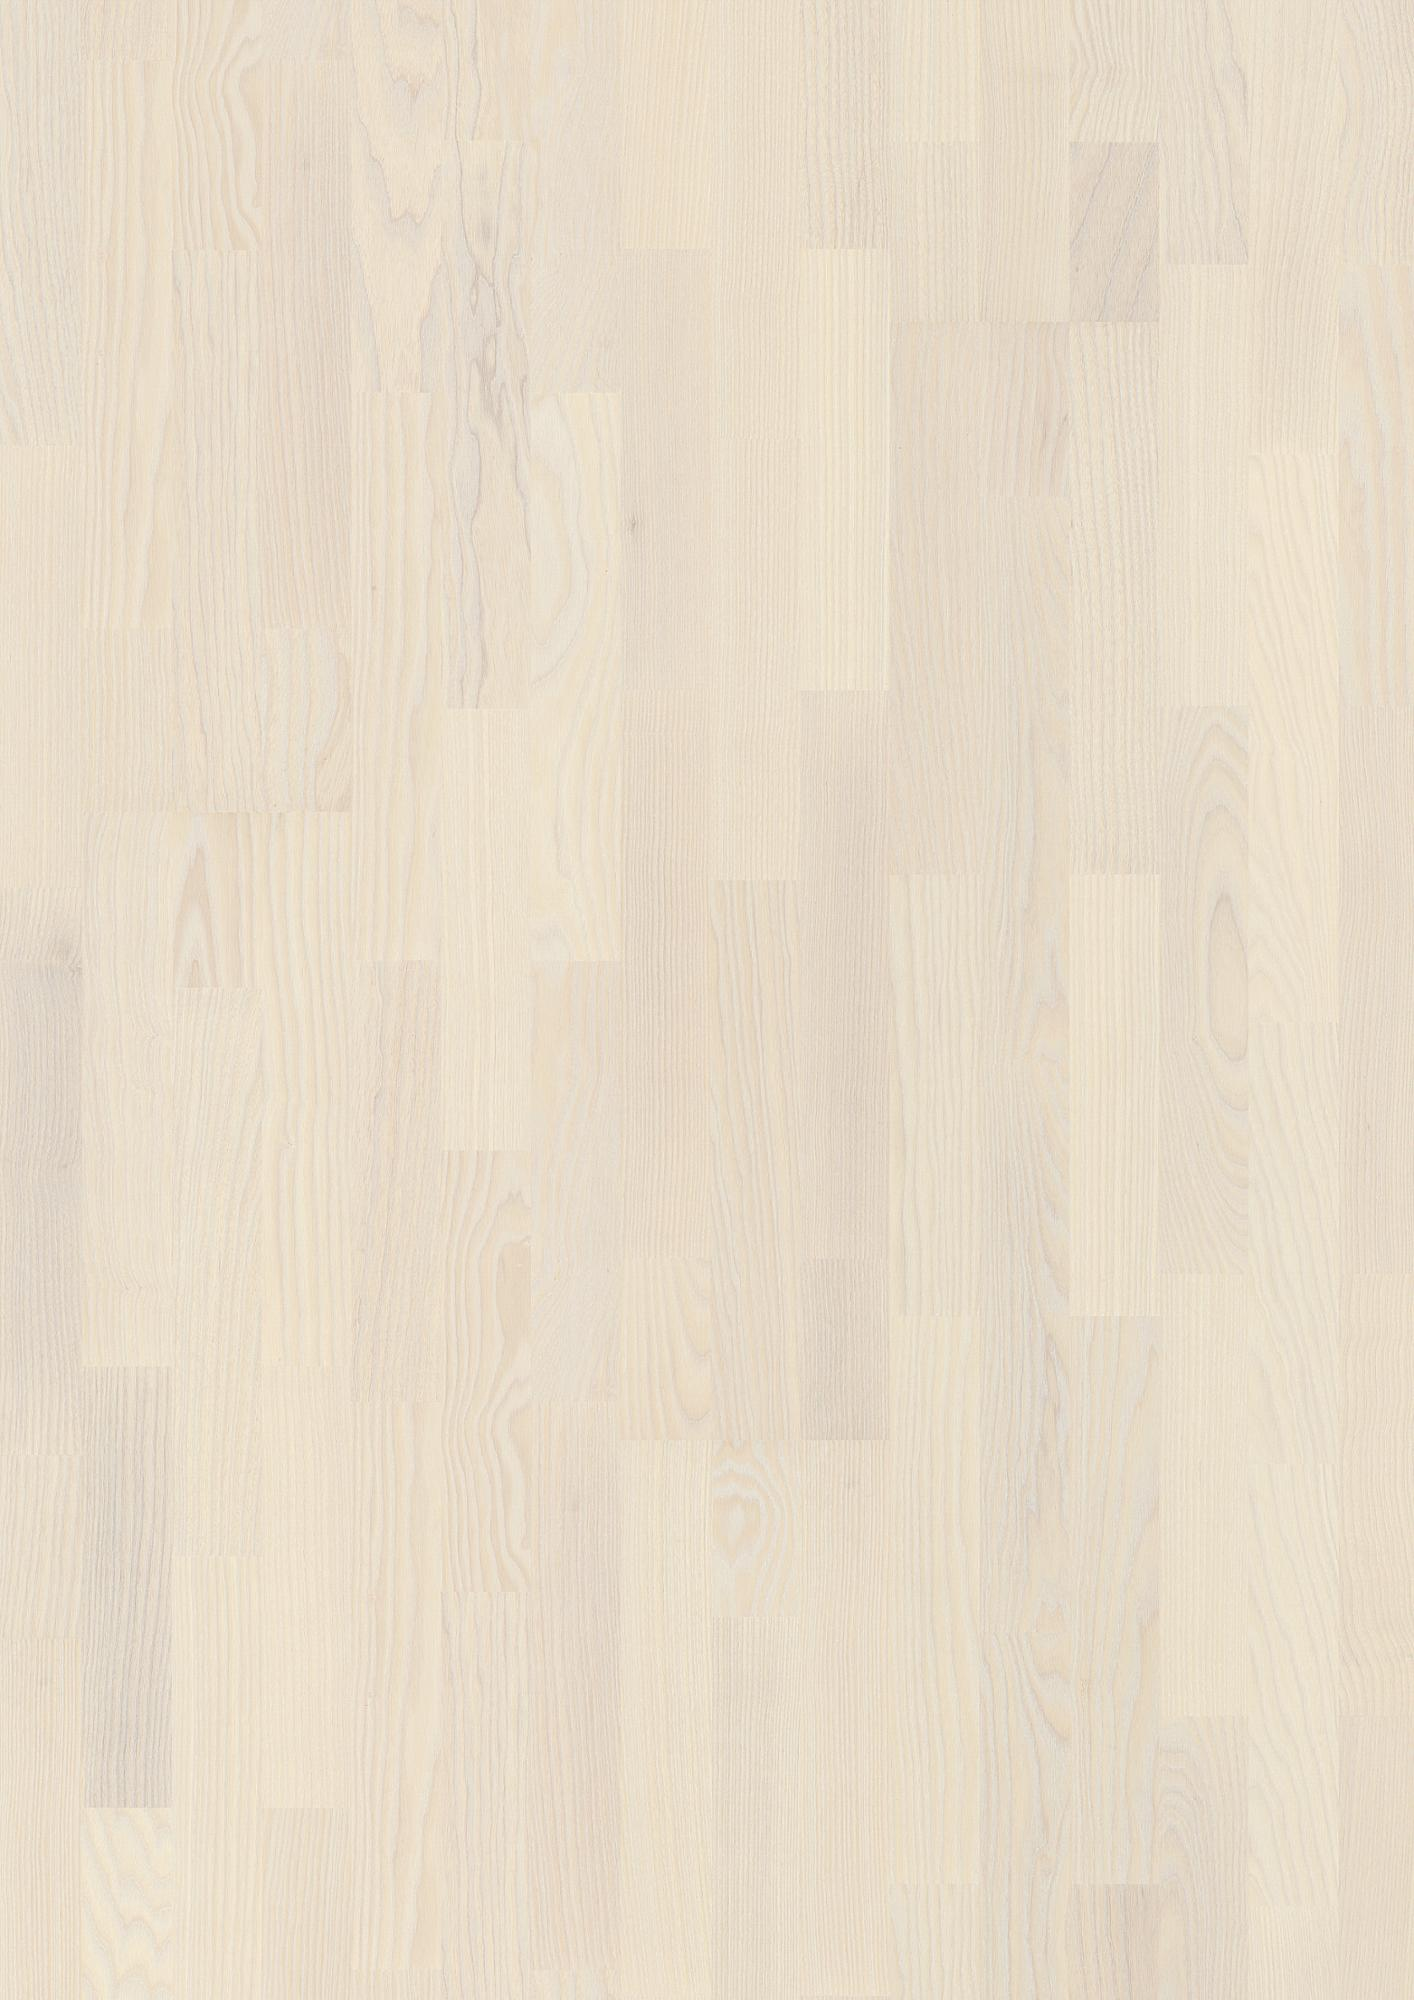 Ash Andante White, Live Pure lacquer white, square edged, brushed, Longstrip 3-Strip, 14x215x2200mm